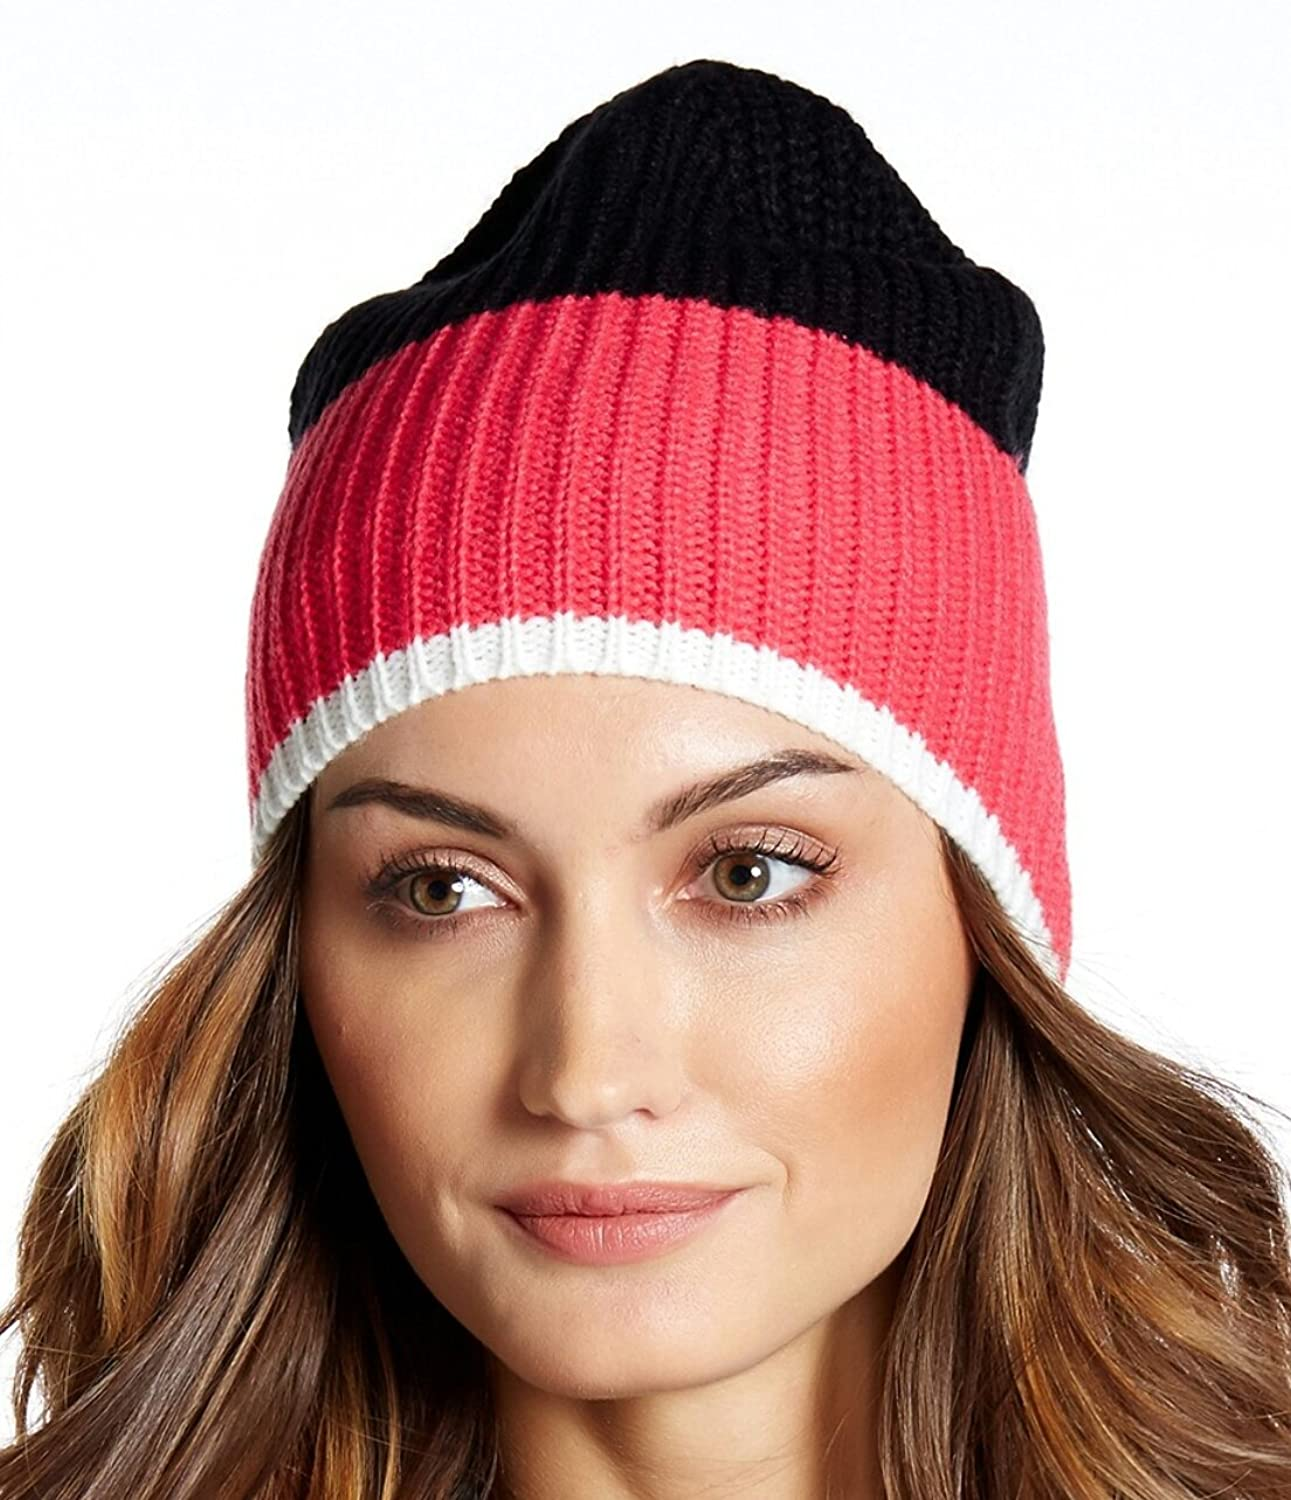 Kate Spade Color Block Zip Up Beanie, Pink Swirl/ Black/ Cream, One Size